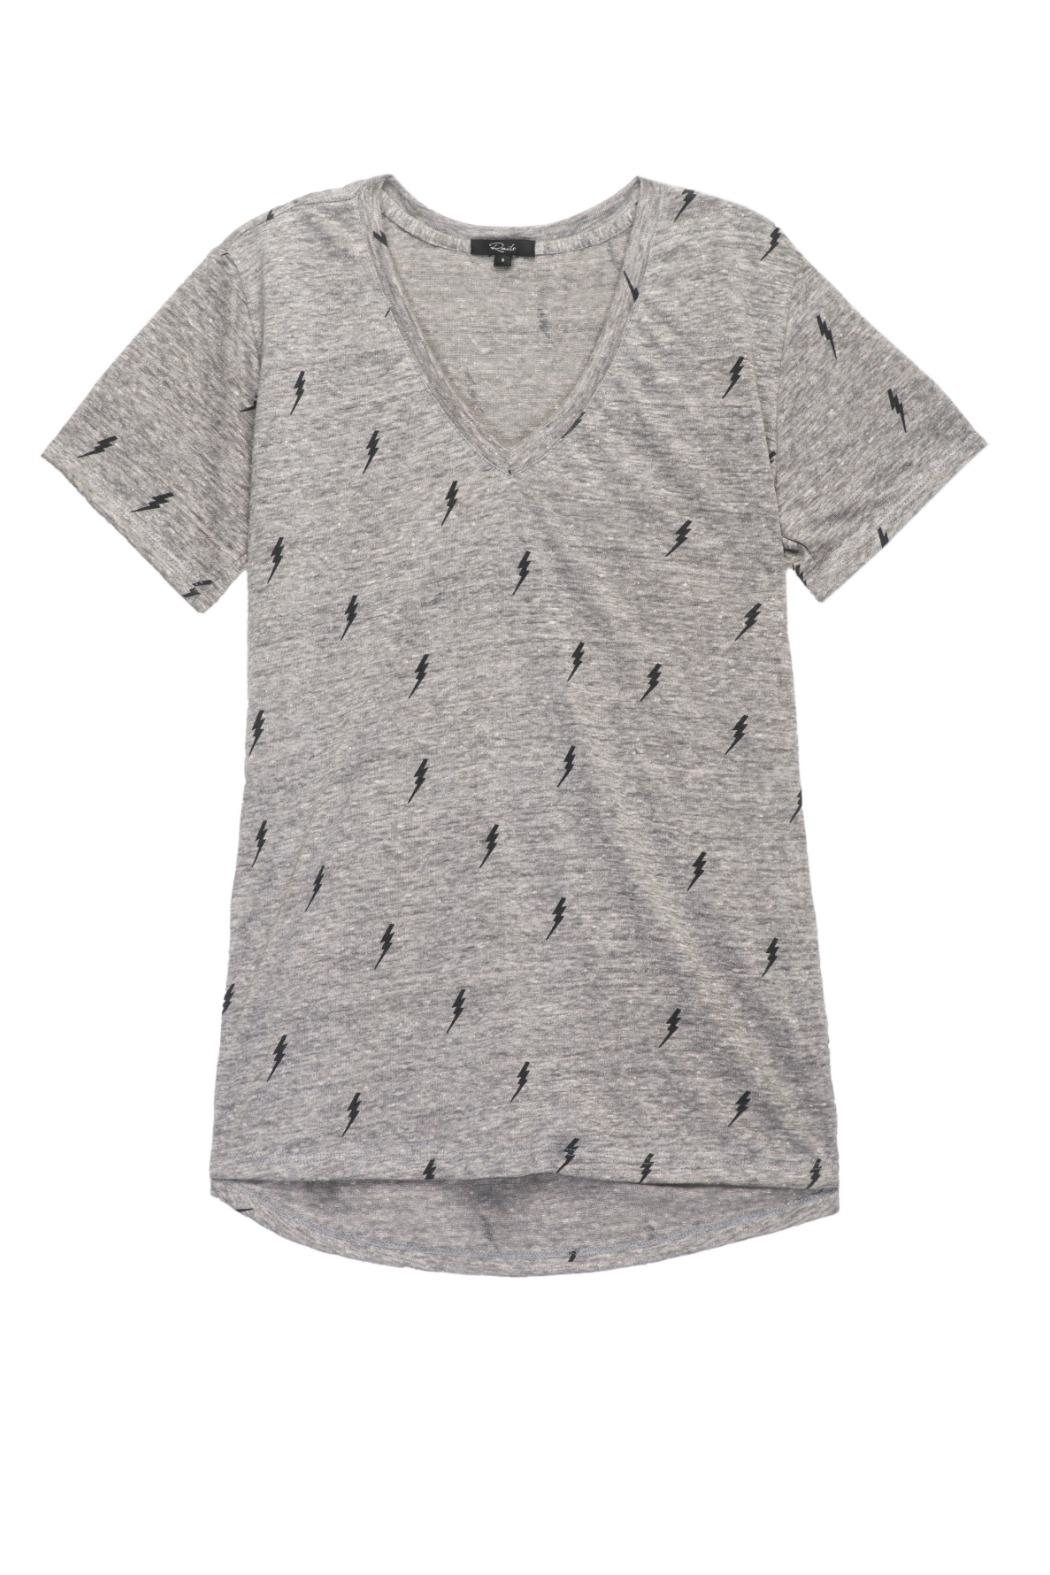 Rails Cara Grey Lightning Tee - Main Image